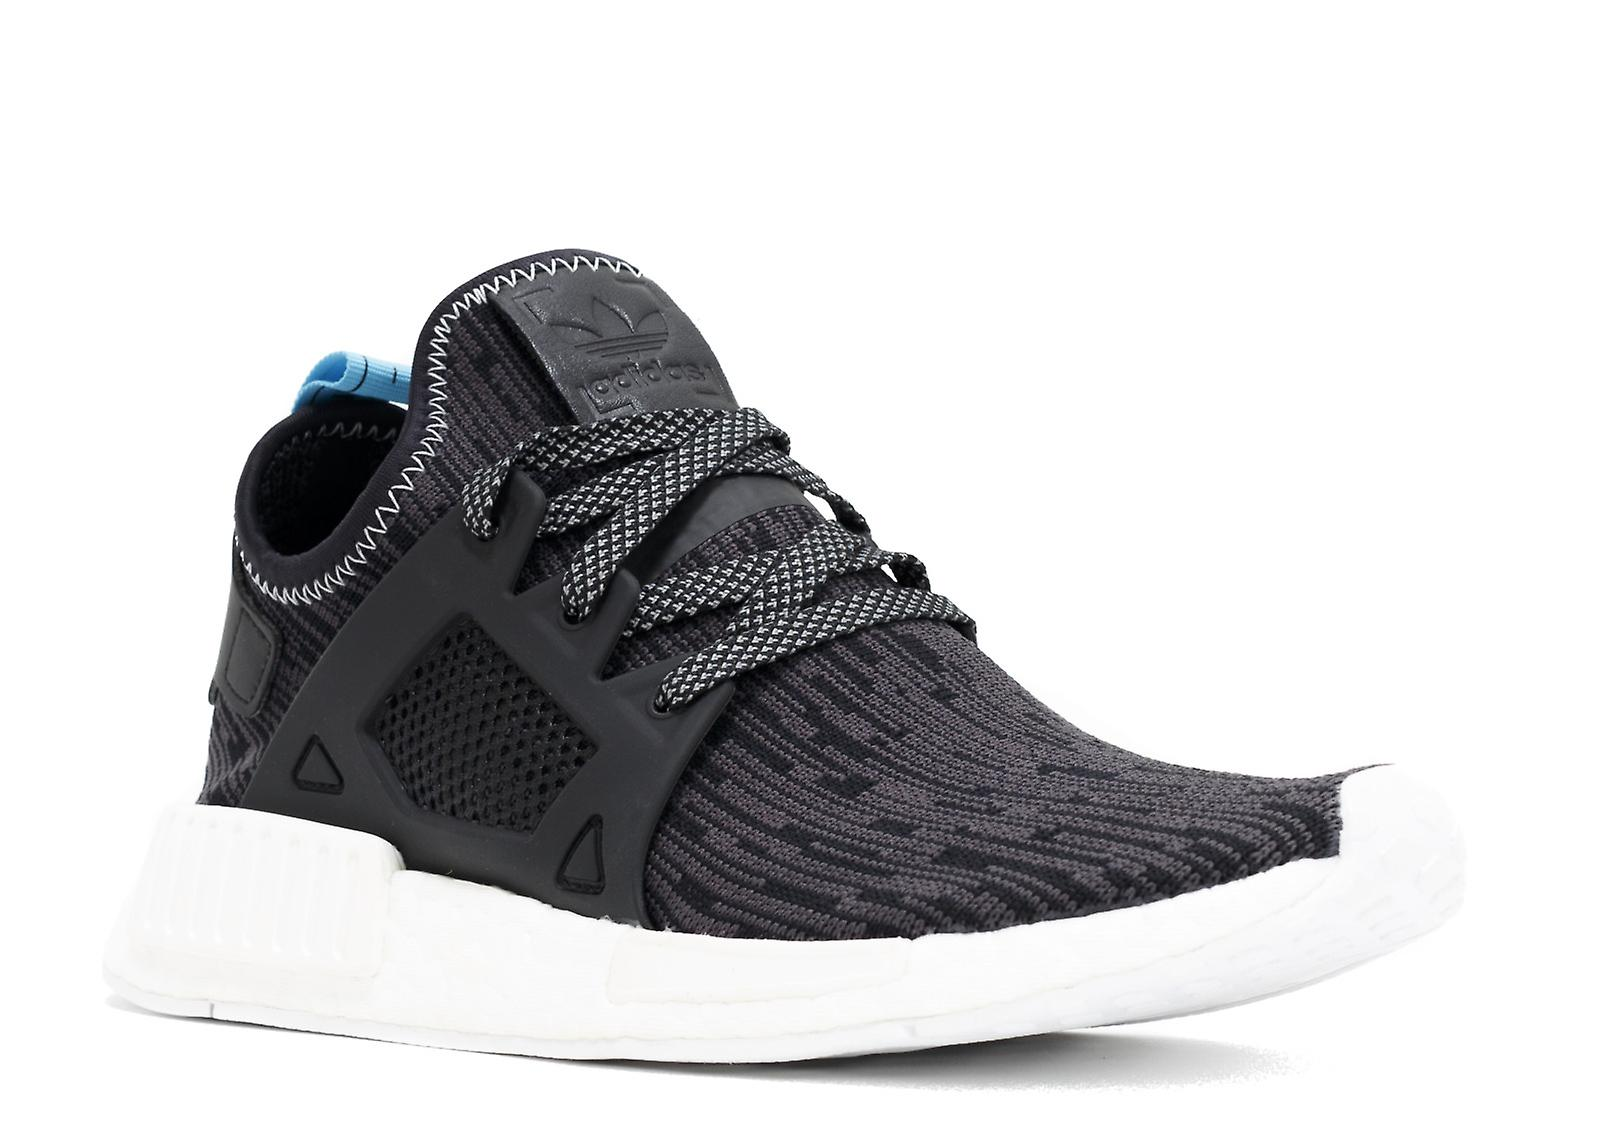 innovative design 52e2f 97fab Nmd Xr1 Pk - S32215 - Shoes